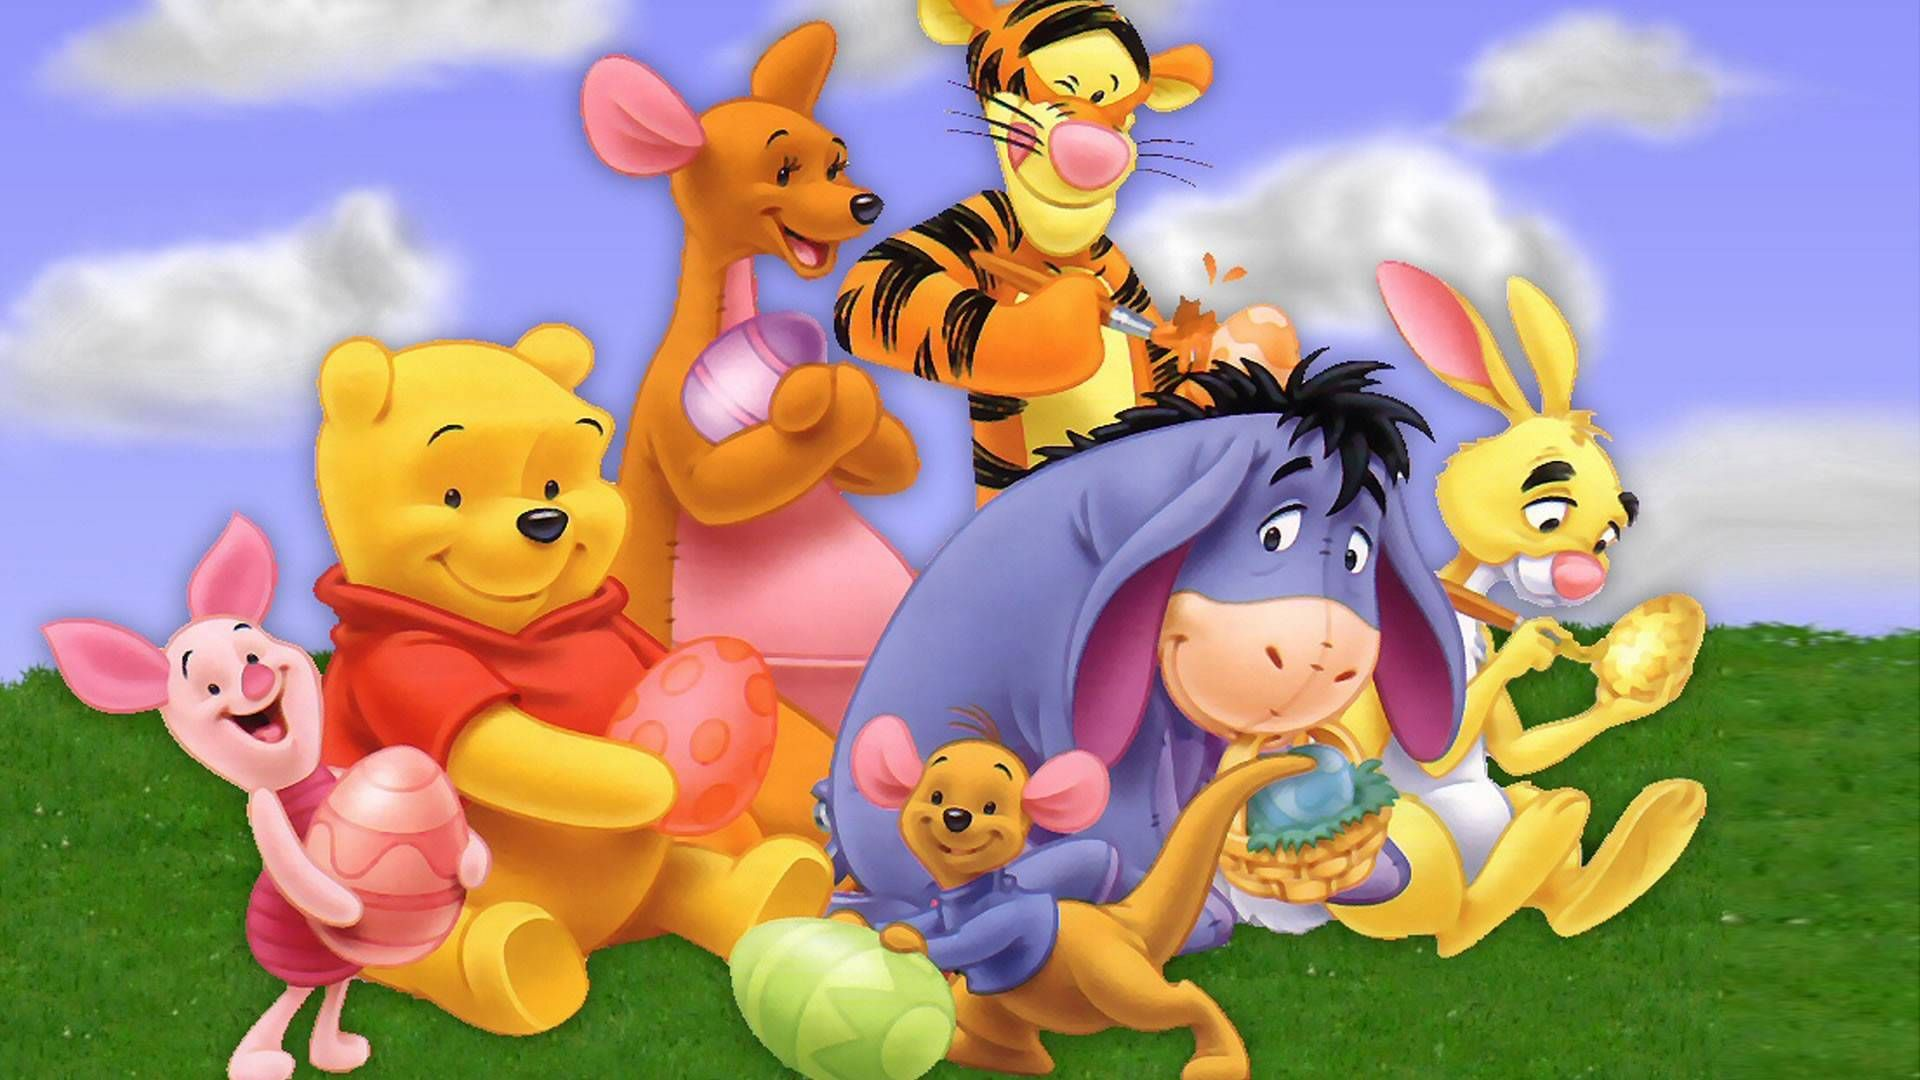 Cartoon wallpaper hd quality cartoon hd hd pictures dis hd winnie the pooh yahoo image search results cartoon wallpaper hd quality cartoon hd hd pictures dis thecheapjerseys Image collections